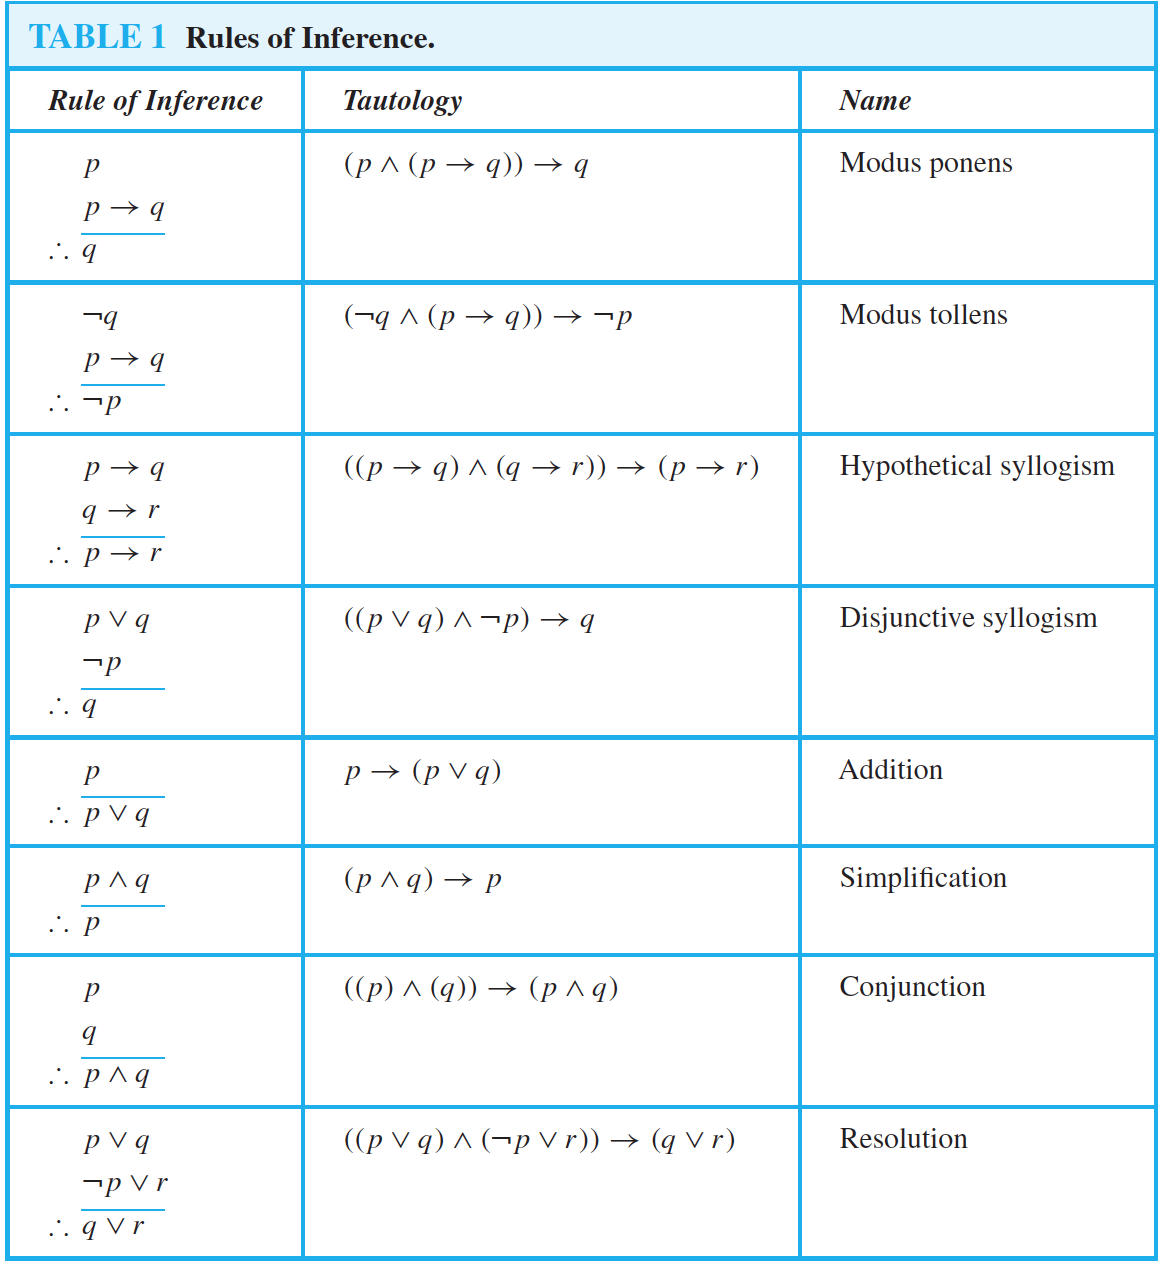 EECS 203 Exam 1 Cheat Sheet by Kalbi - Download free from ...